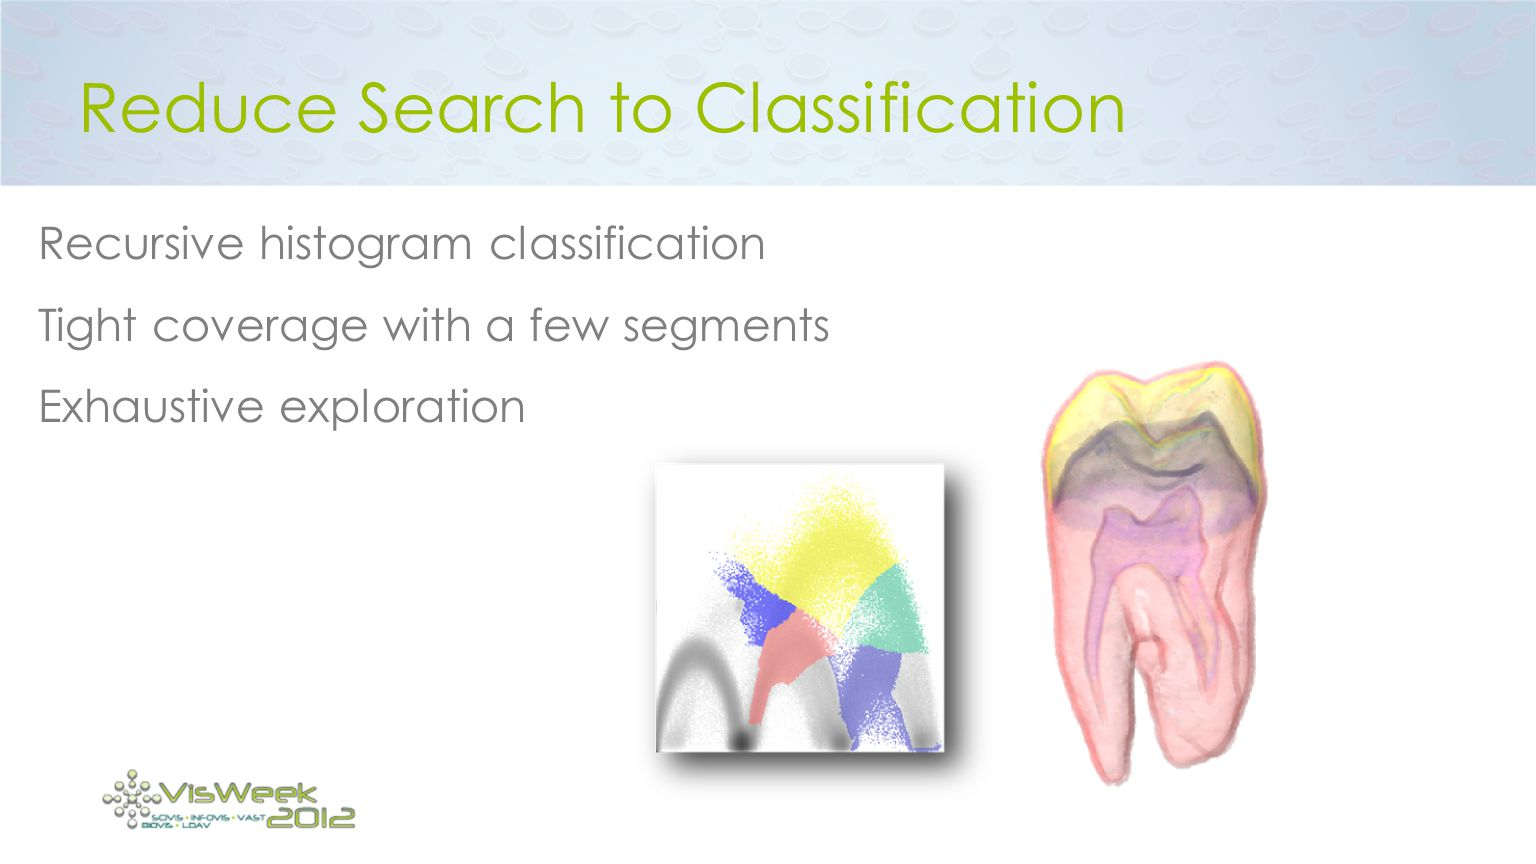 Reduce Search to Classification